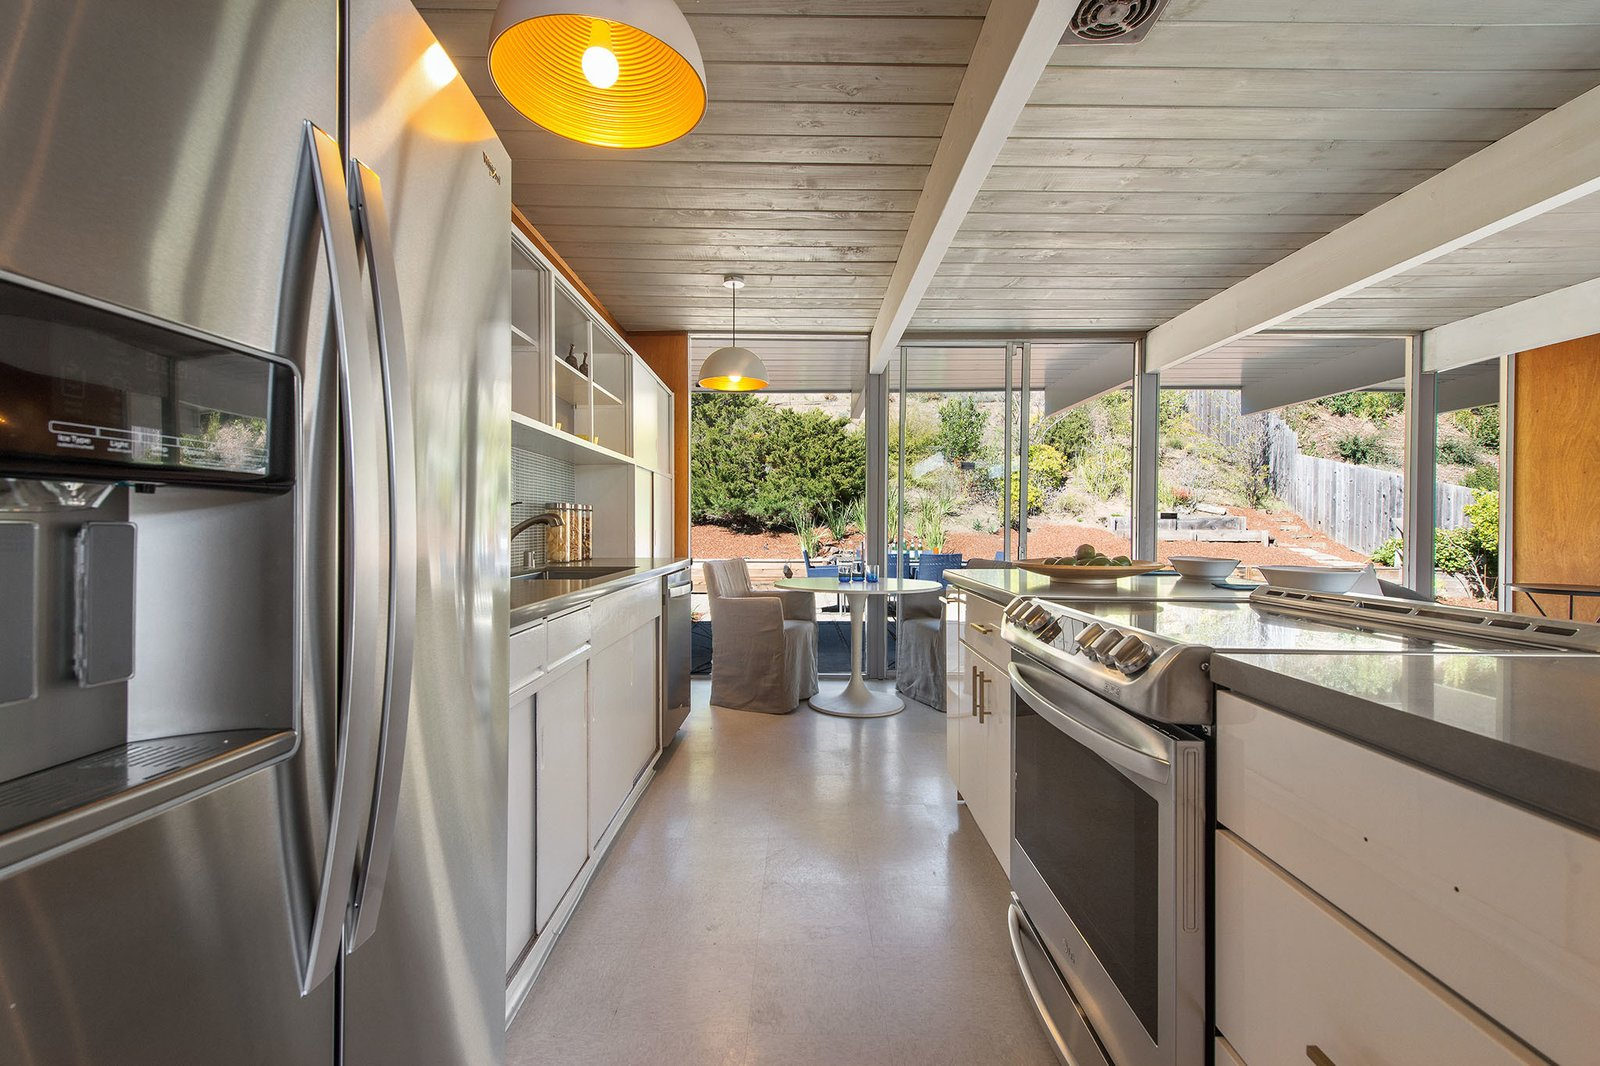 Kitchen, White Cabinet, Refrigerator, Cooktops, Wall Oven, Pendant Lighting, Drop In Sink, and Glass Tile Backsplashe Appliances have been updated in keeping with the design.  Photo 8 of 21 in An Elegant Eichler Hits the Market at $1.15M in Northern California